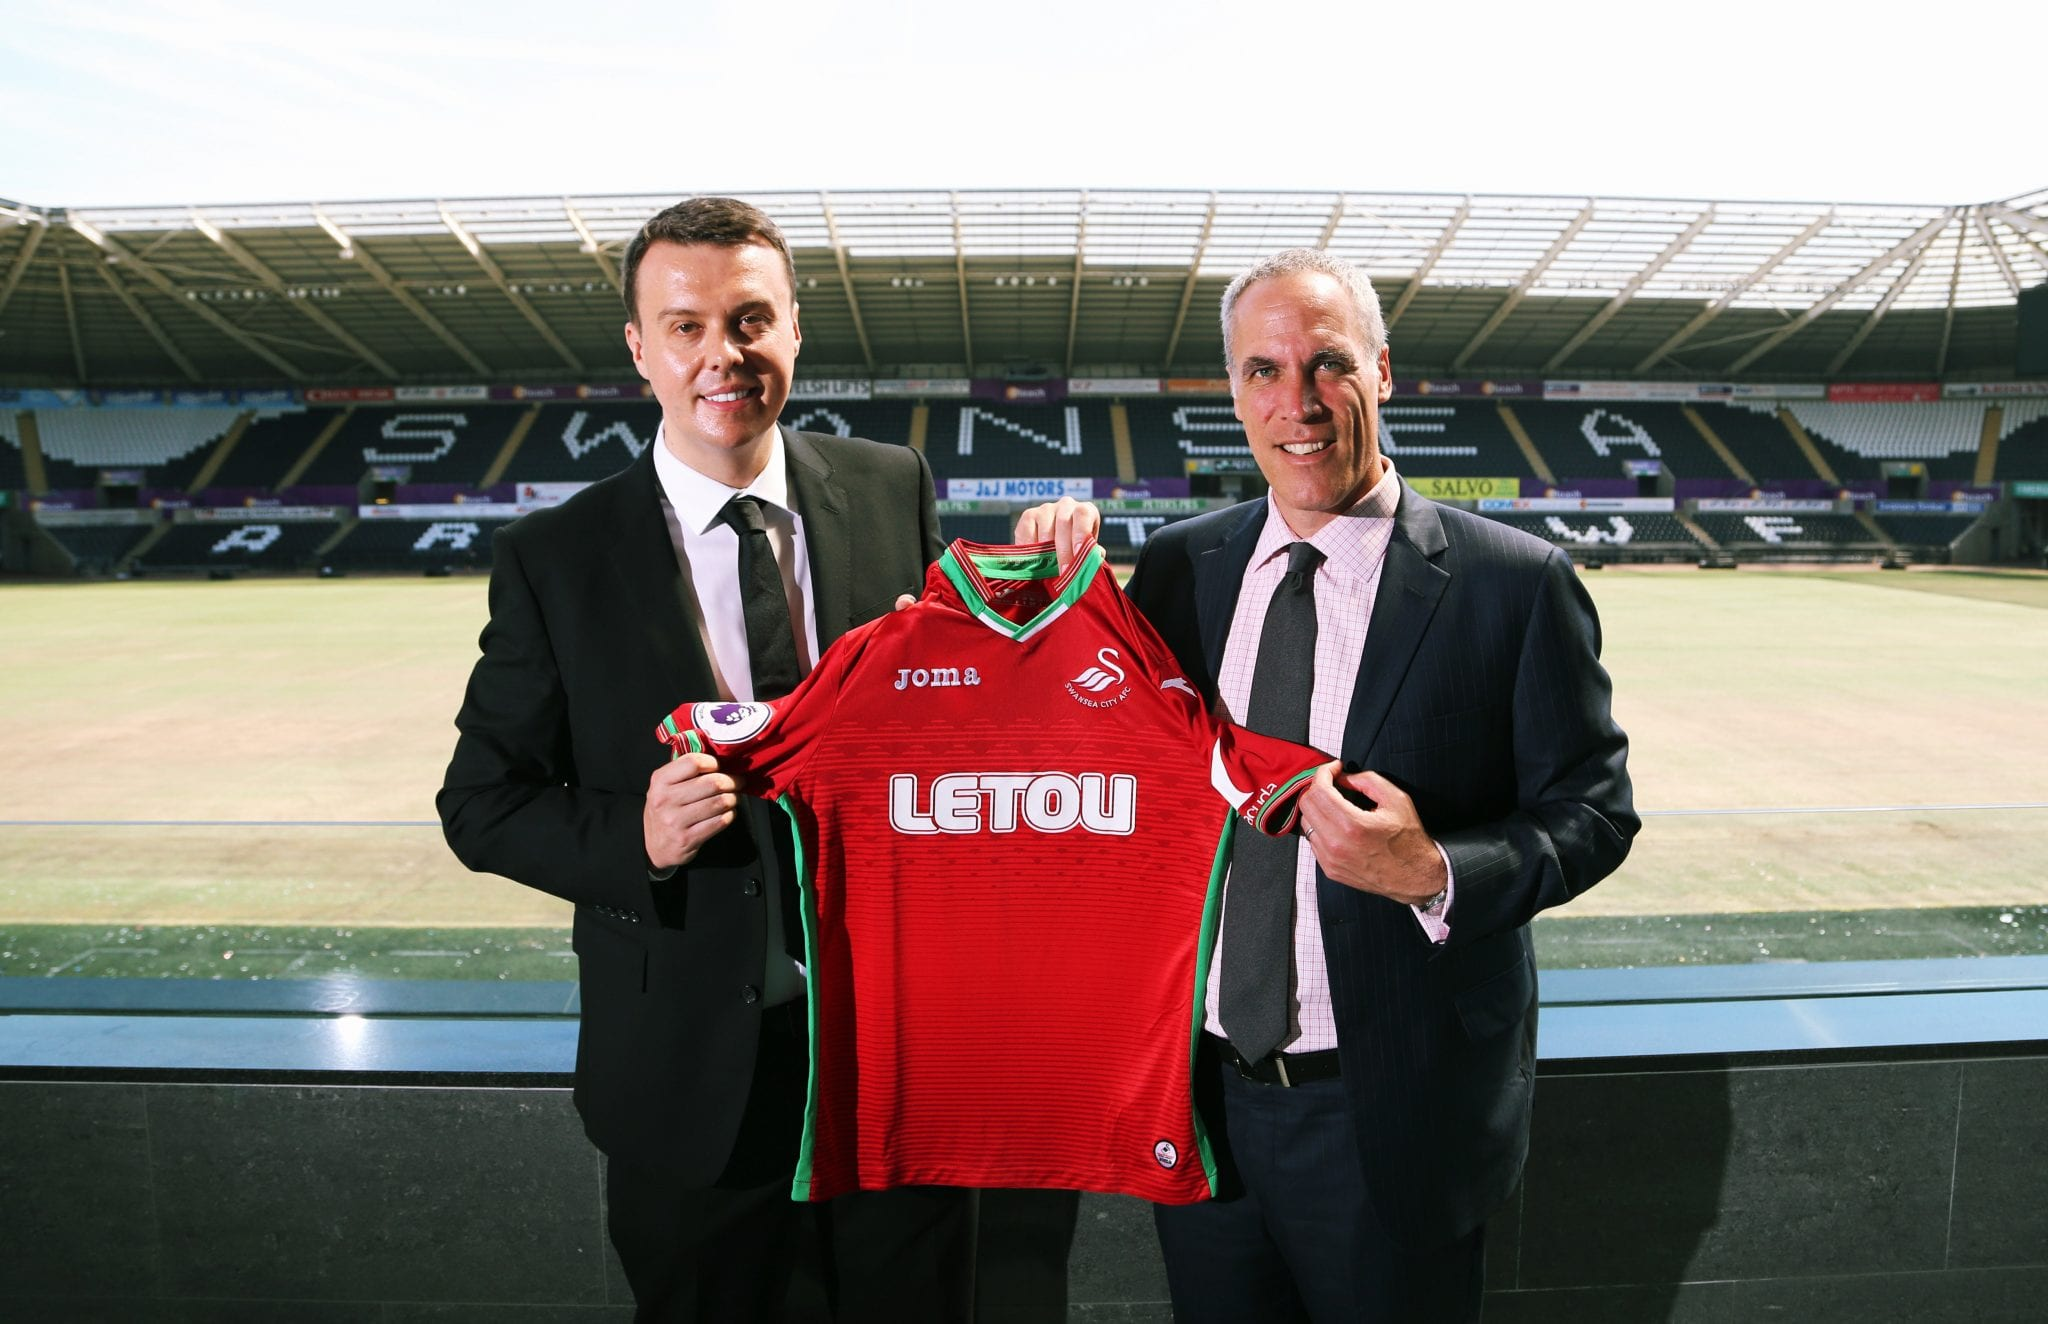 Pictured L-R: Paul Fox, CEO of Letou with Chris Pearlman, COO of Swansea City FC. Monday 19 June 2017 Re: Swansea City FC launch their new home and away kits and announce Letou as their new sponsor at the Liberty Stadium, Swansea, Wales, UK.